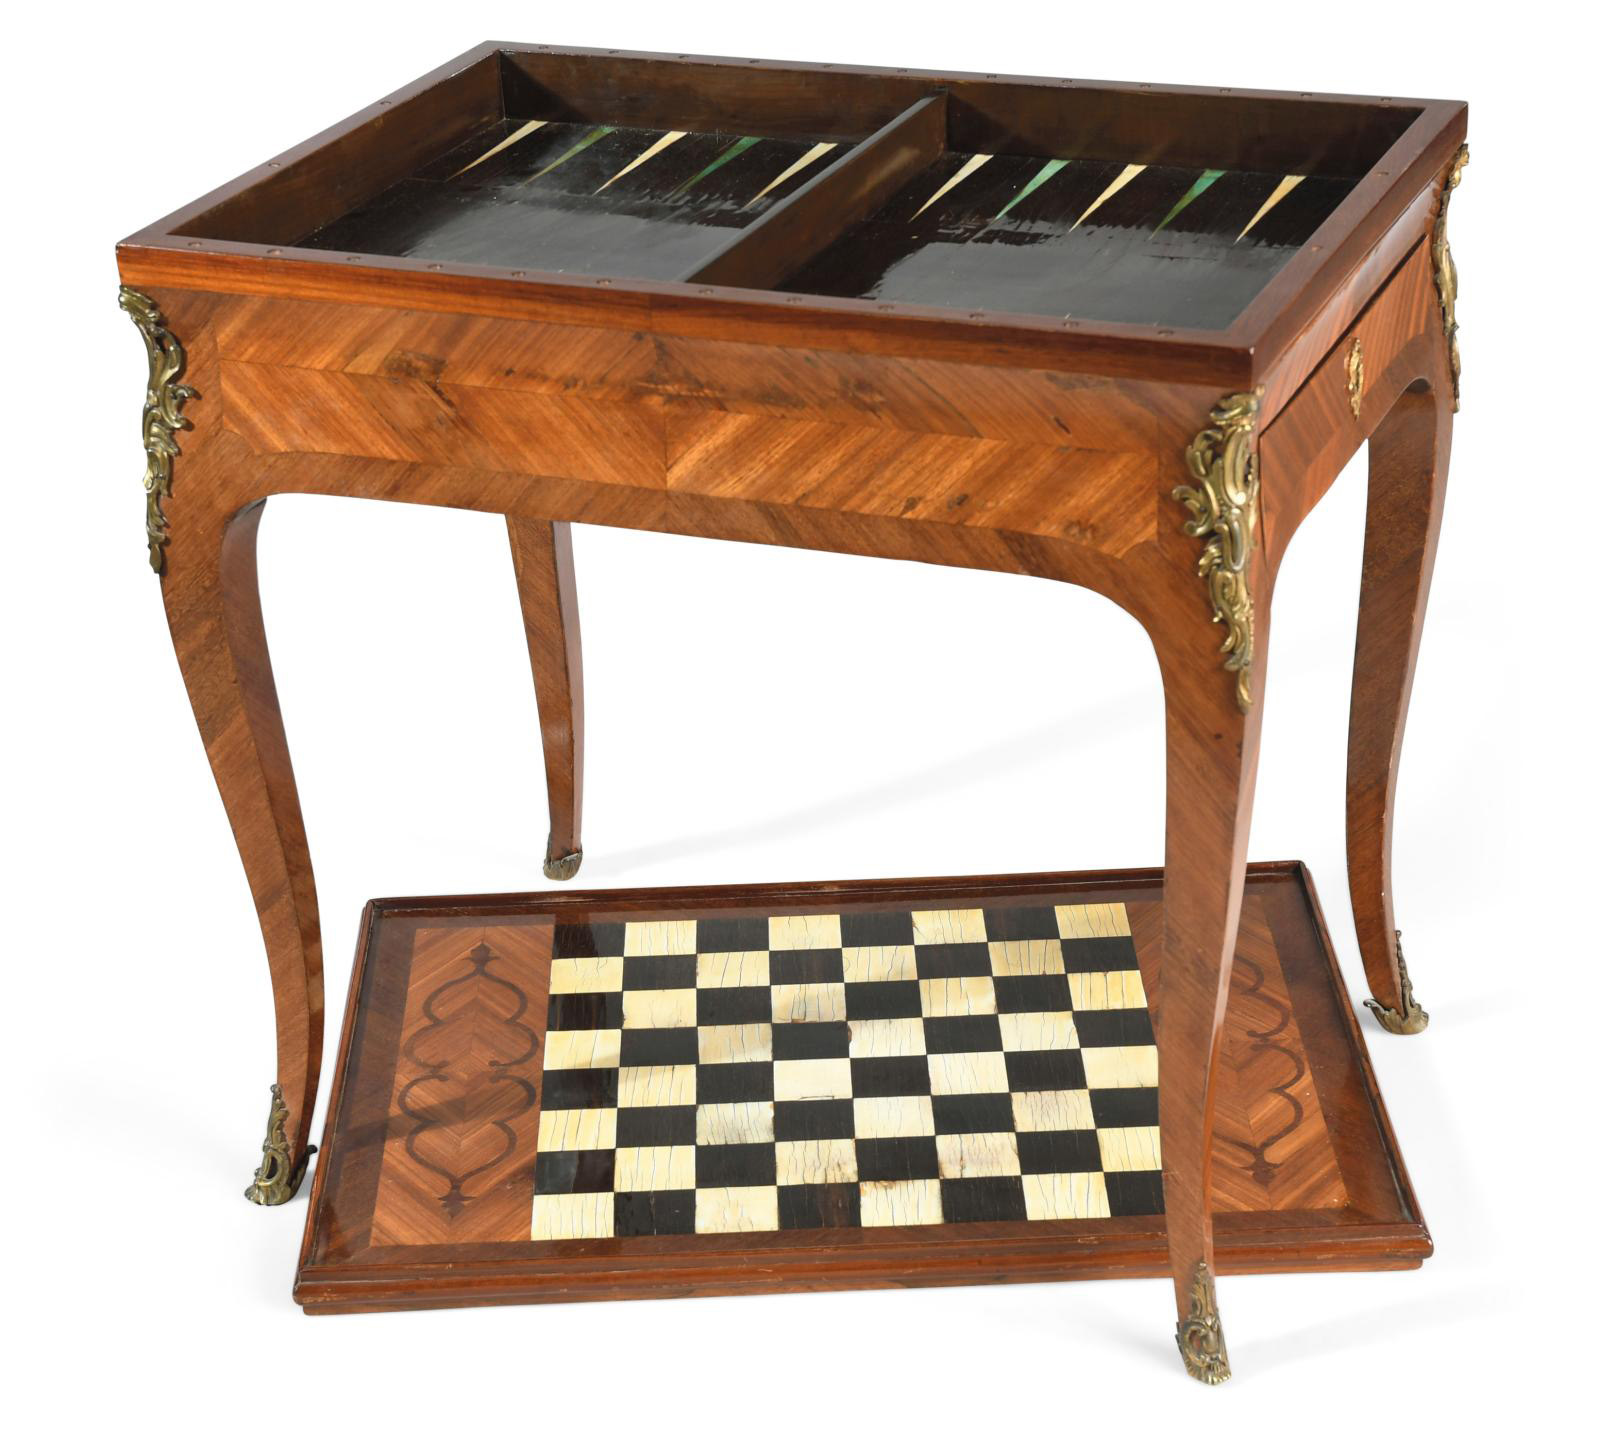 18th-century tric-trac table in bloodwood veneer with kingwood frames, removable top with one side upholstered in leather and the other fe